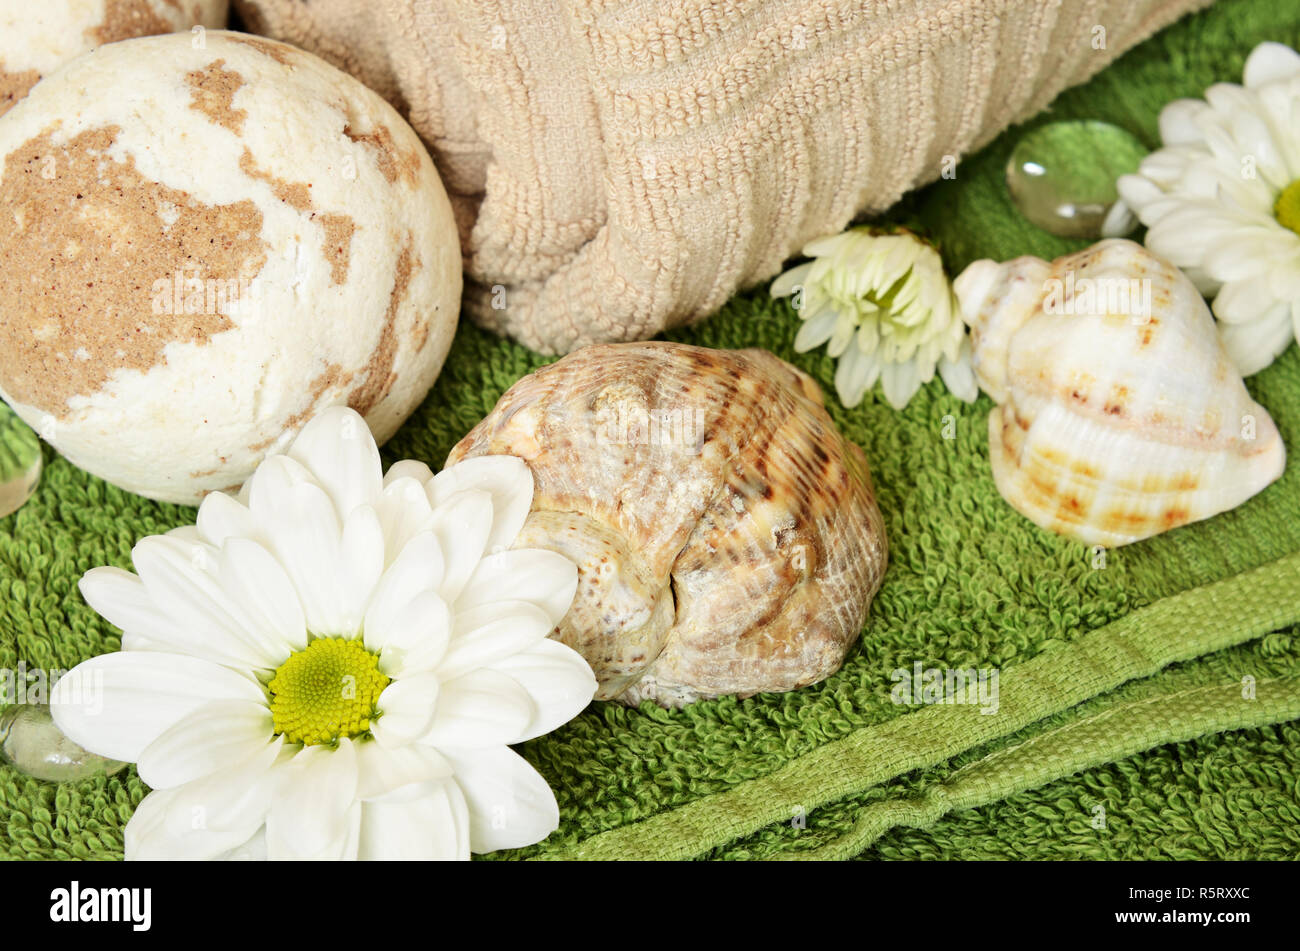 Towel, chamomiles  and bath bomb for relaxation - Stock Image